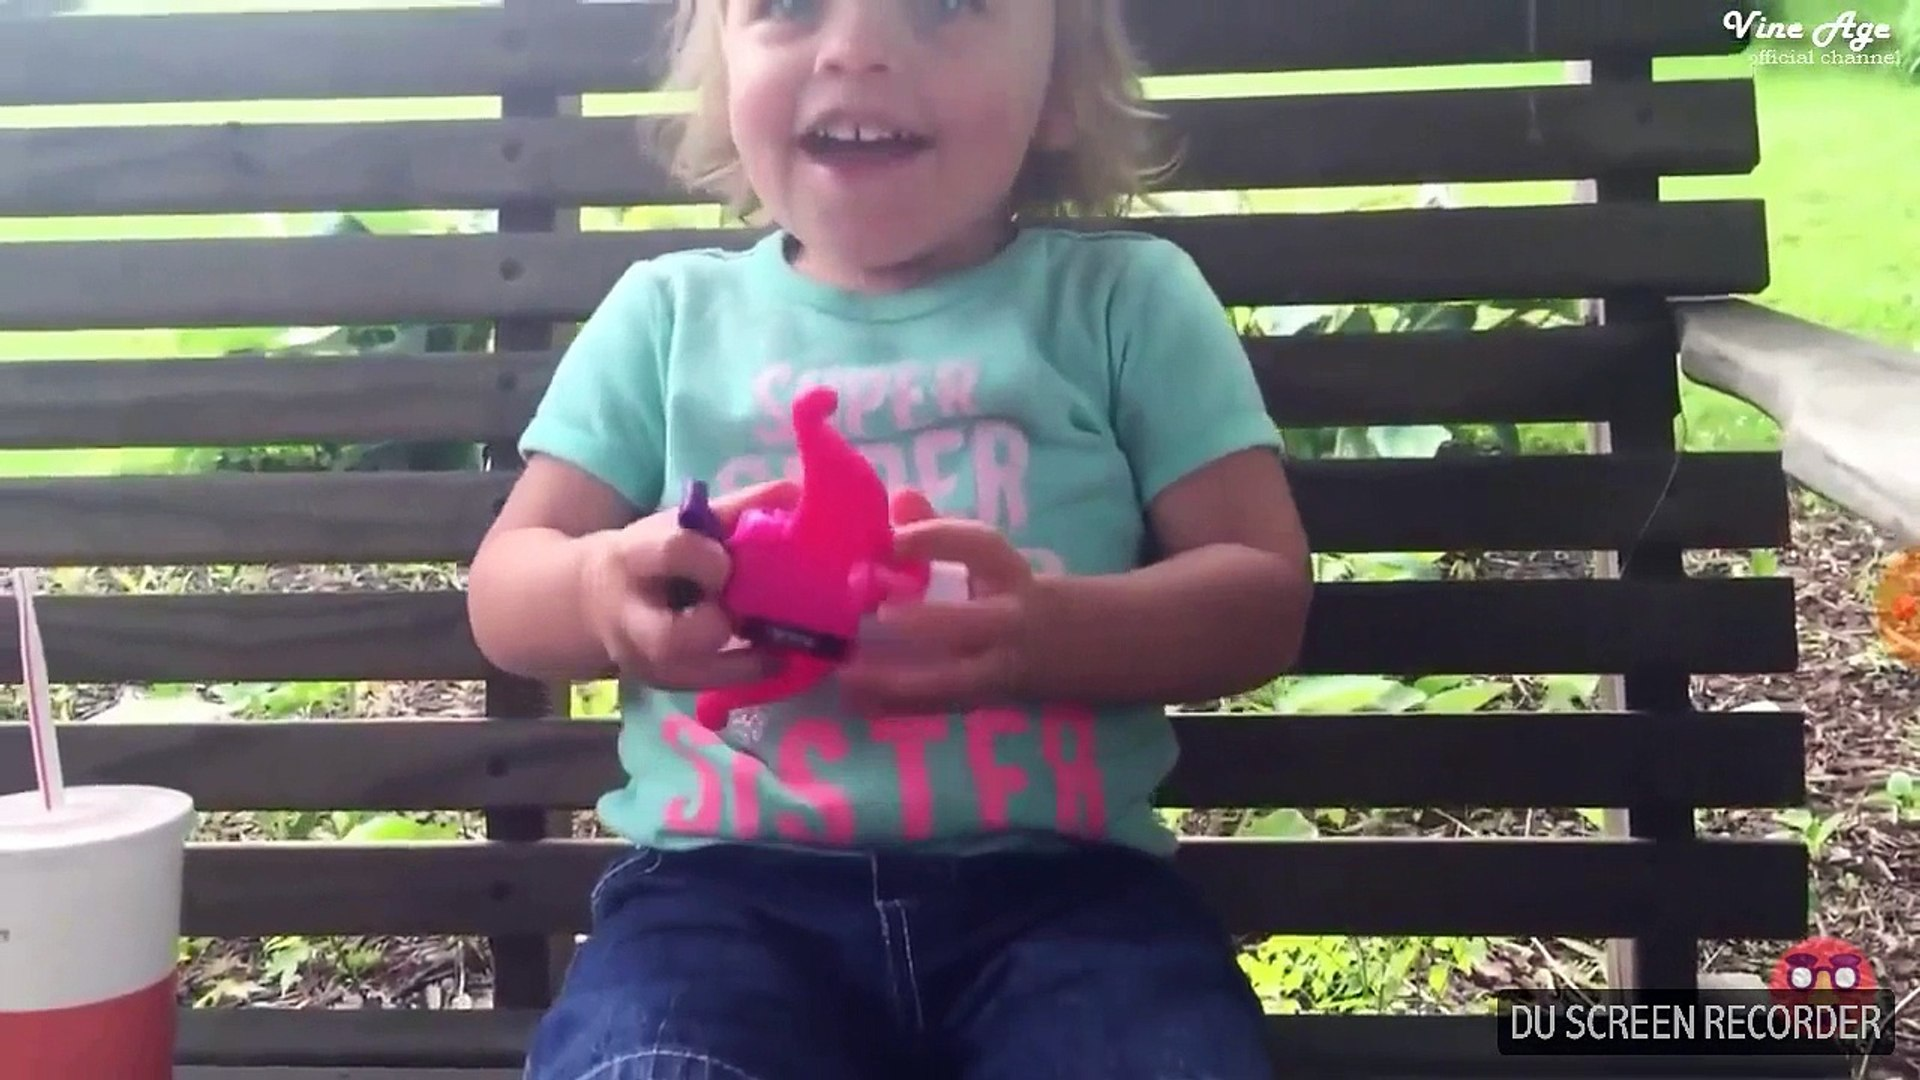 Cute baby funny video